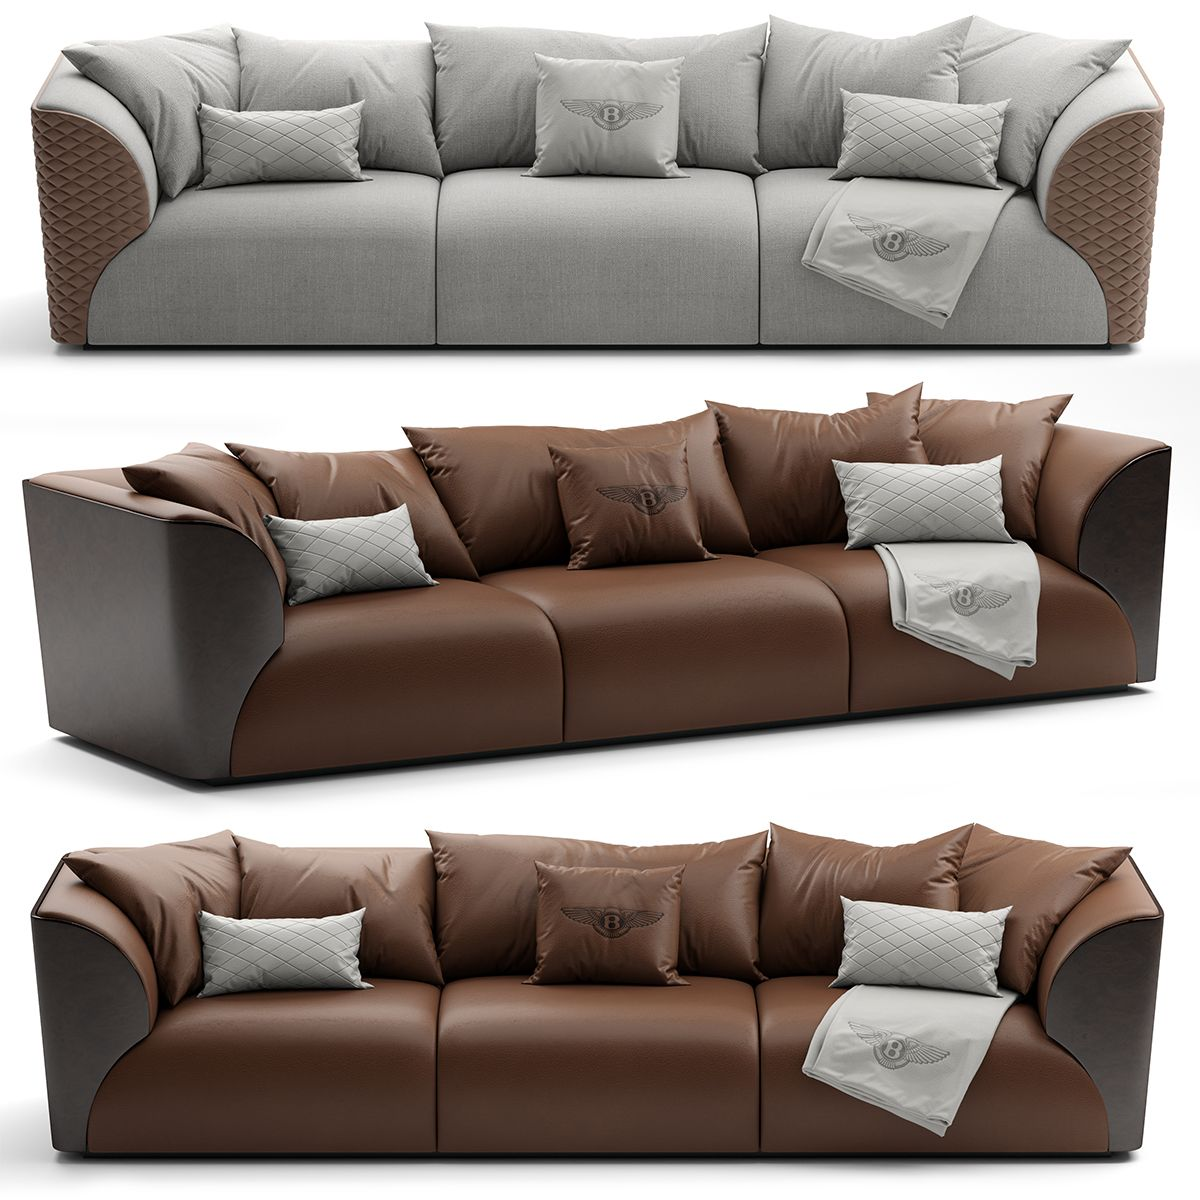 Best 3D Model Bentley Home Winston Sofa 155 Free Download 400 x 300